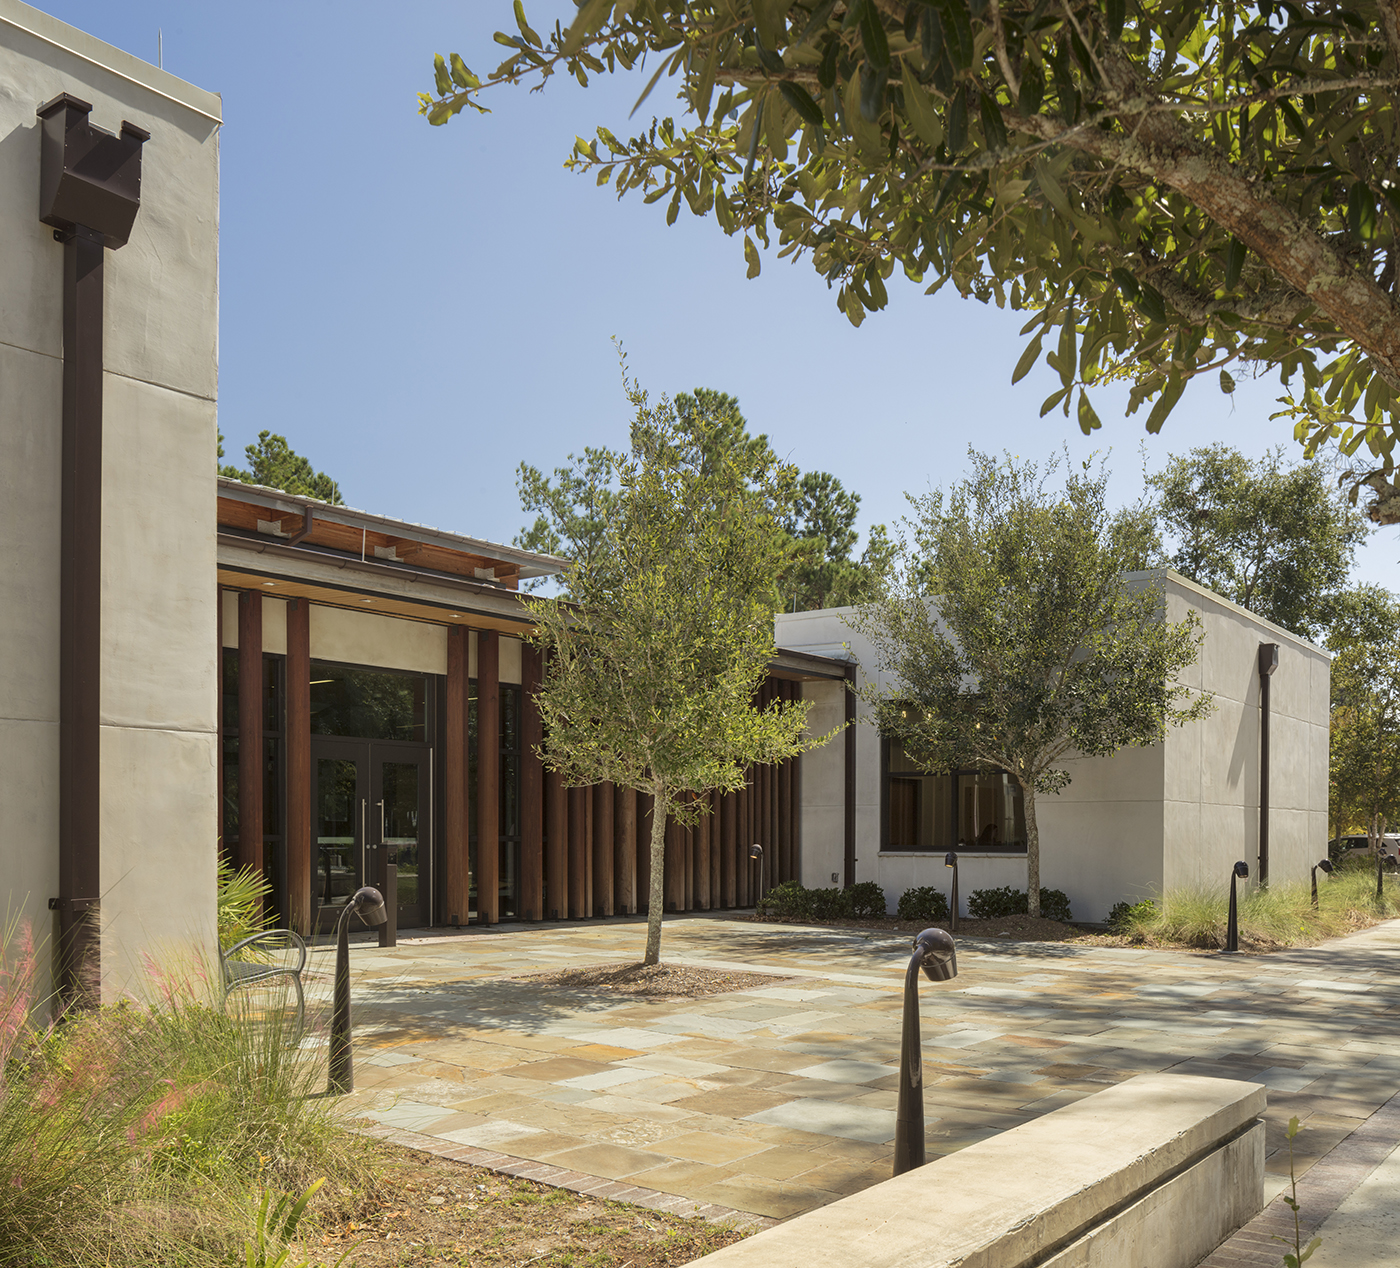 St. Helena Branch Library at Penn Center